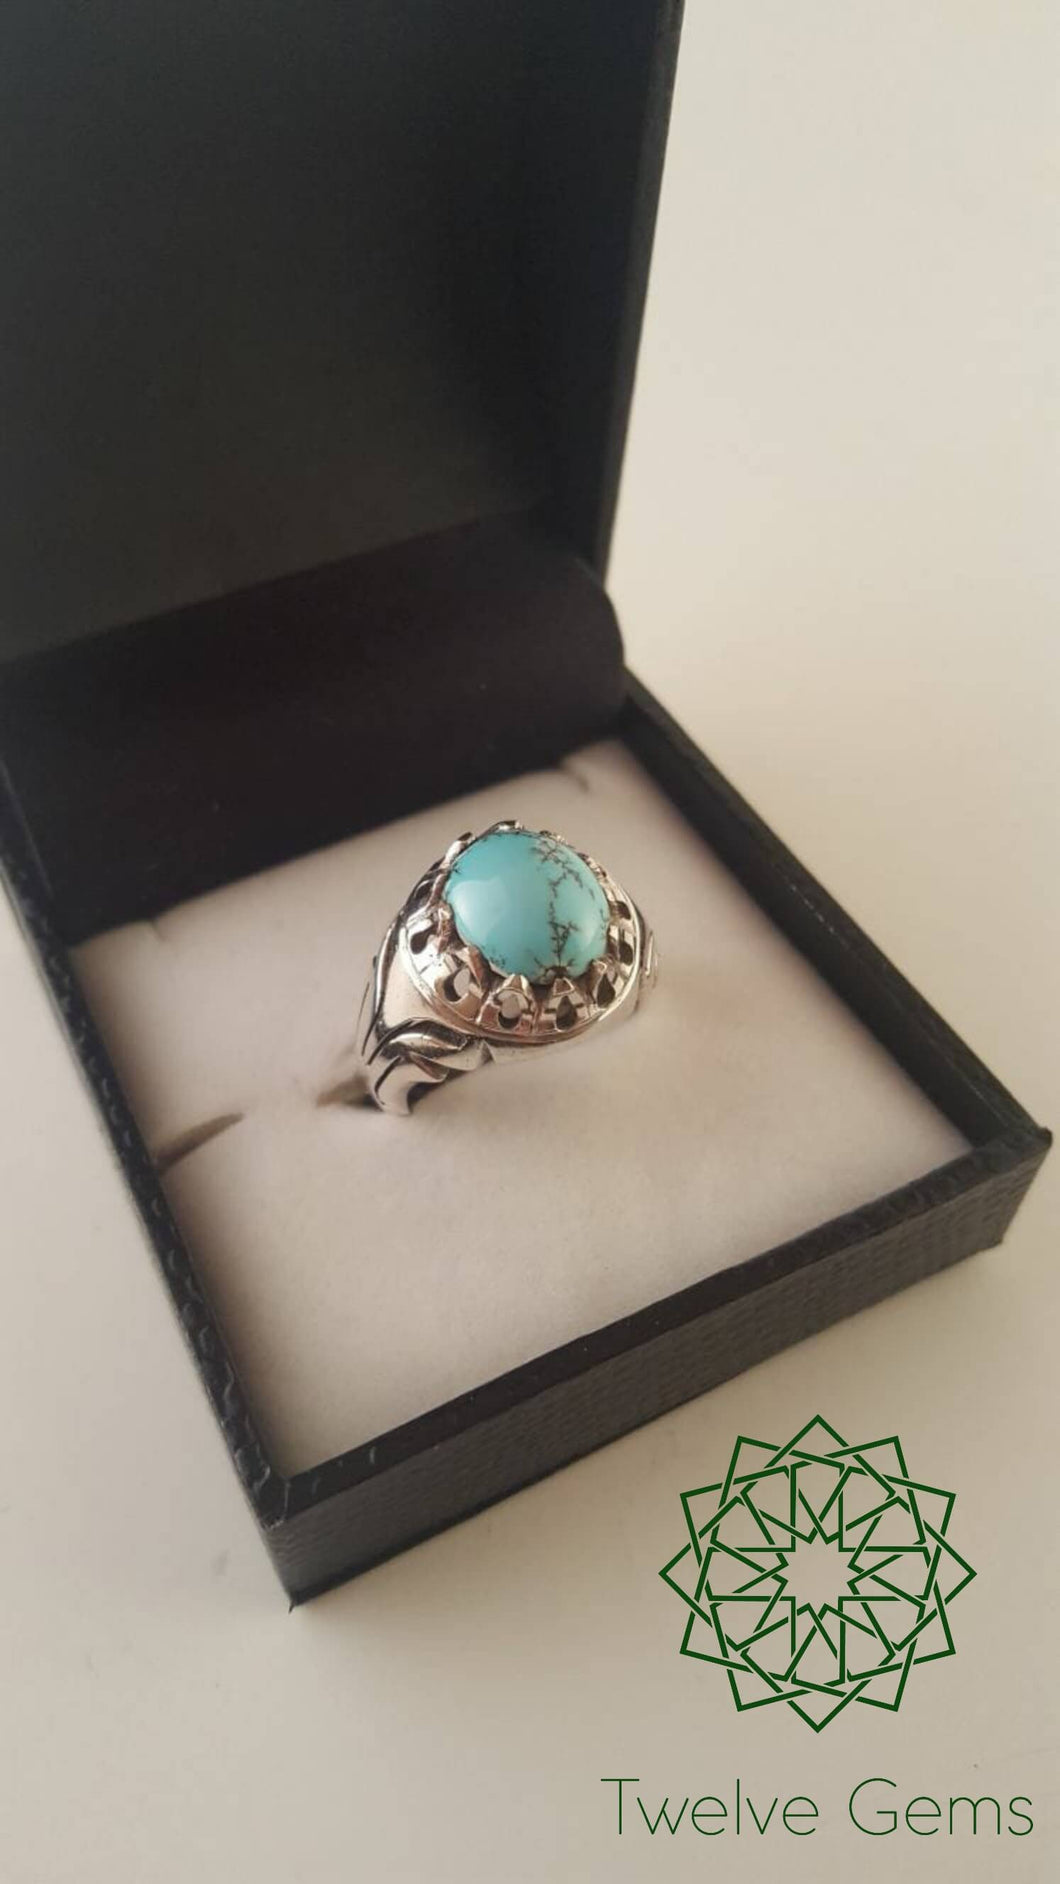 Blue Turquoise (Fairouz) with Matrix Silver Ring